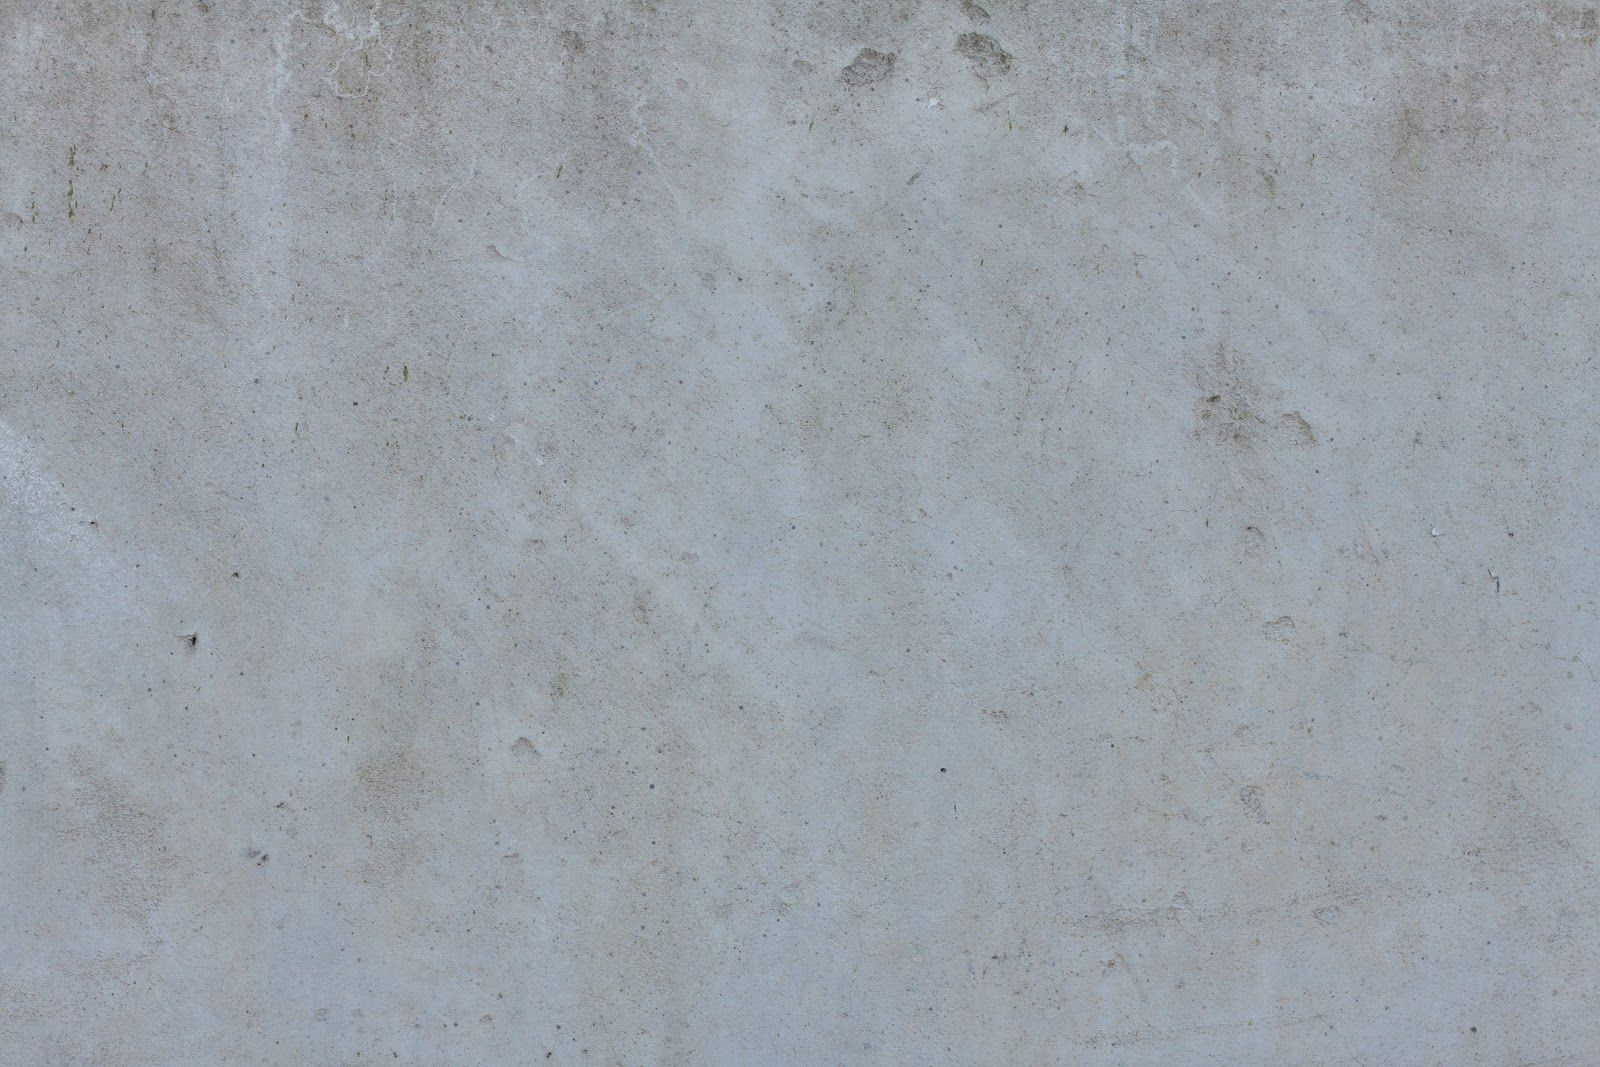 Exceptional Smooth Detailed Concrete Garage Wall 4752x3168